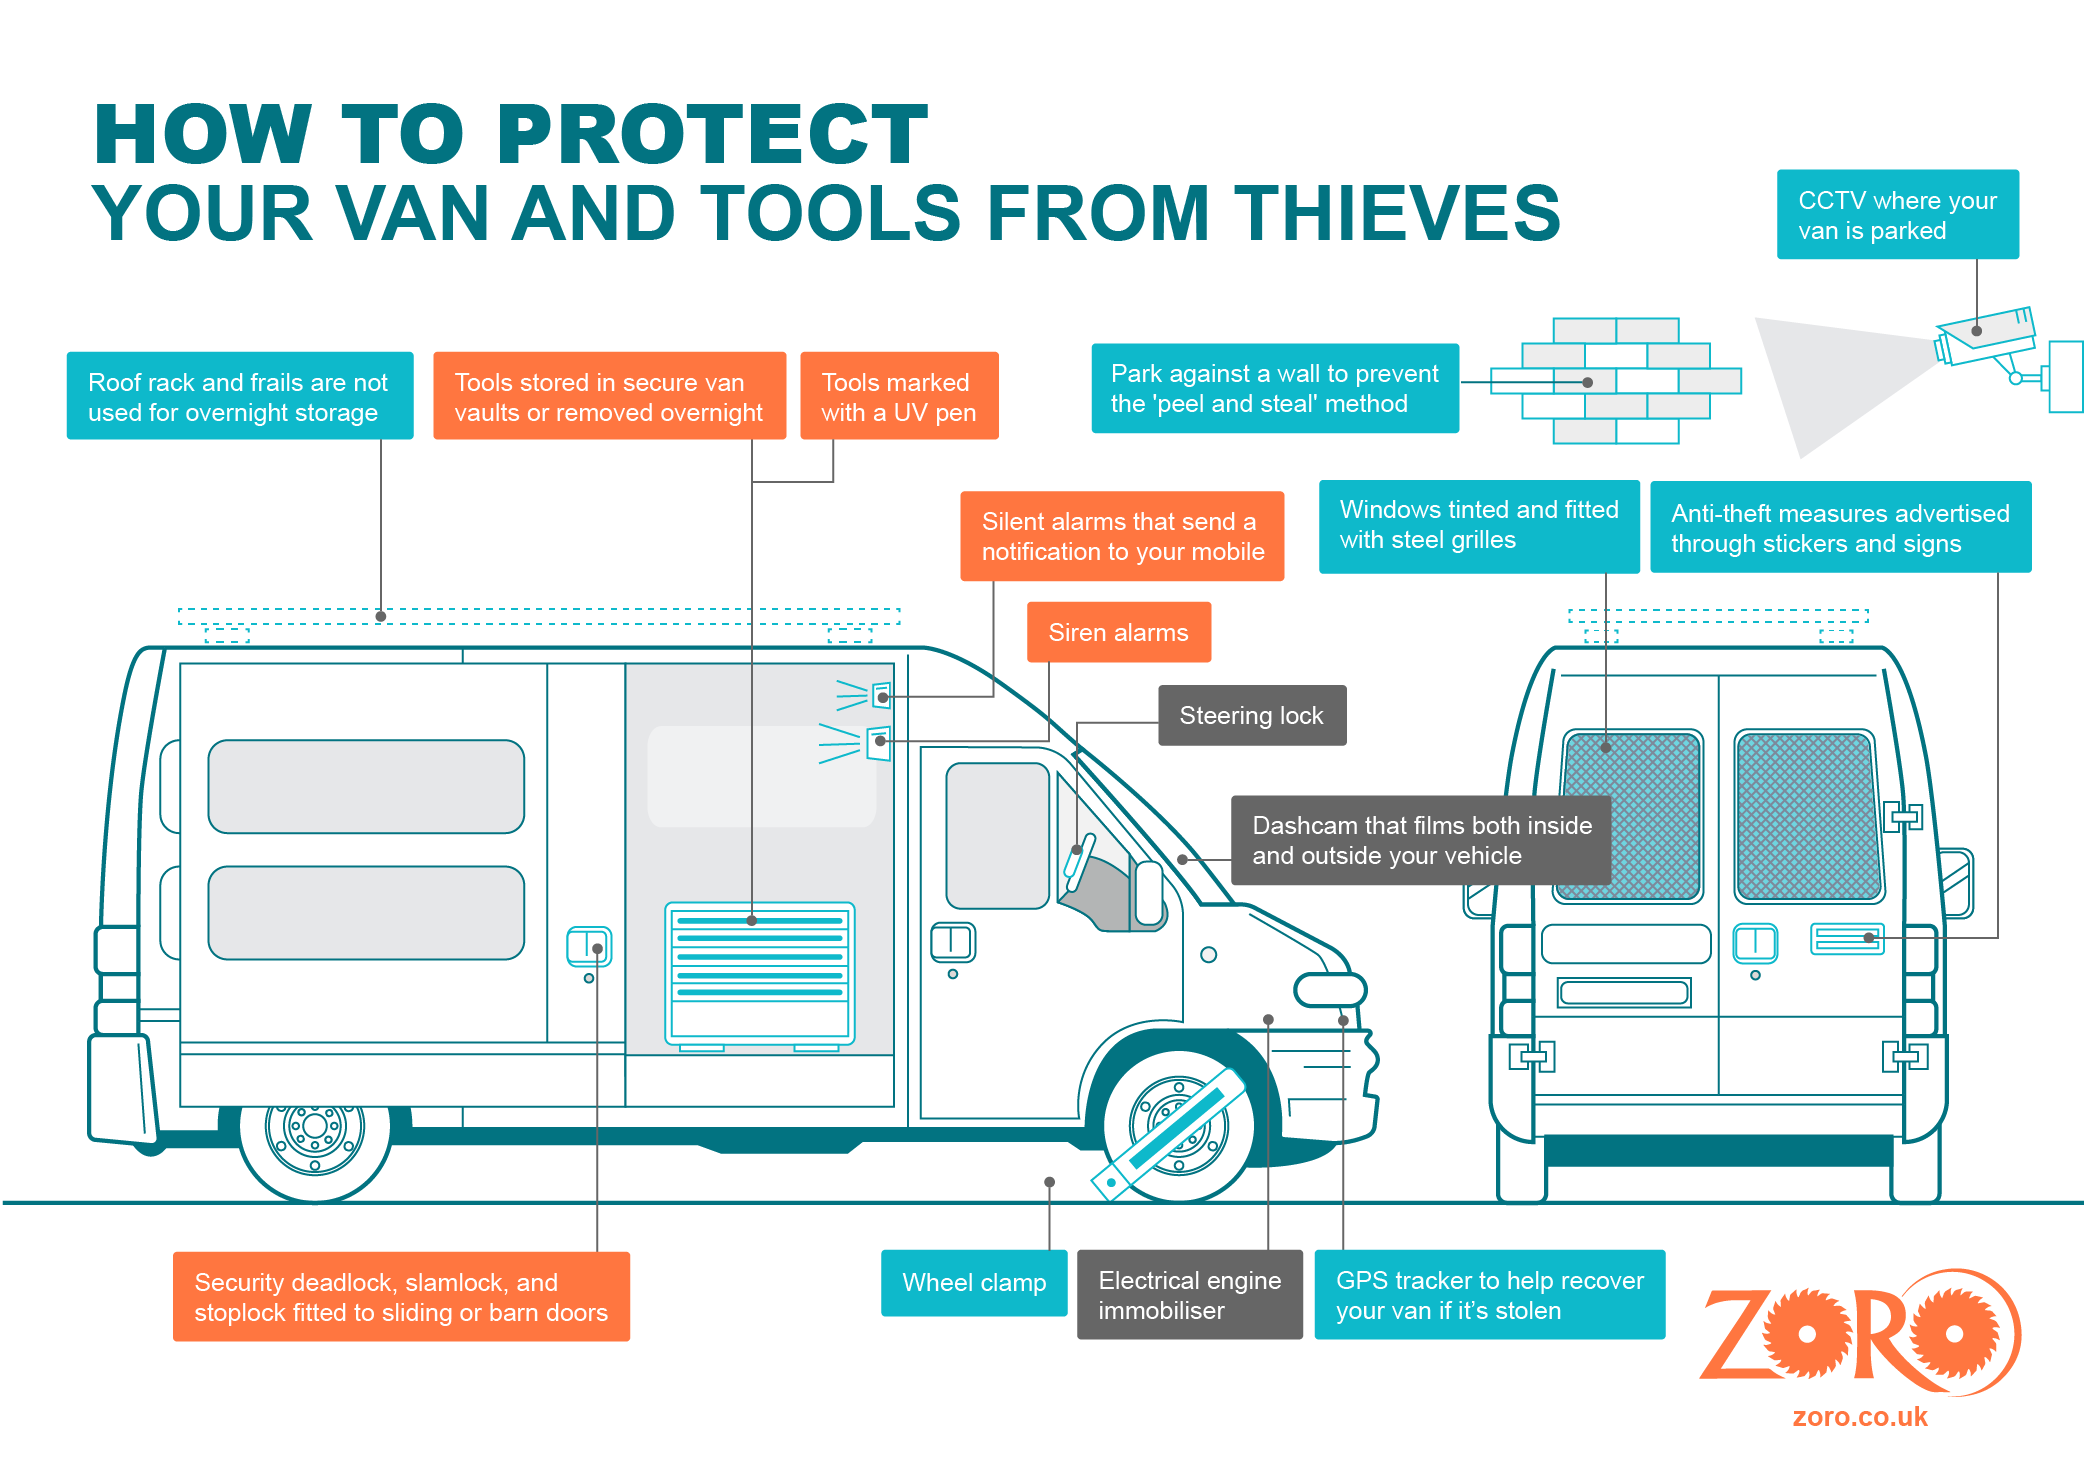 protect your van